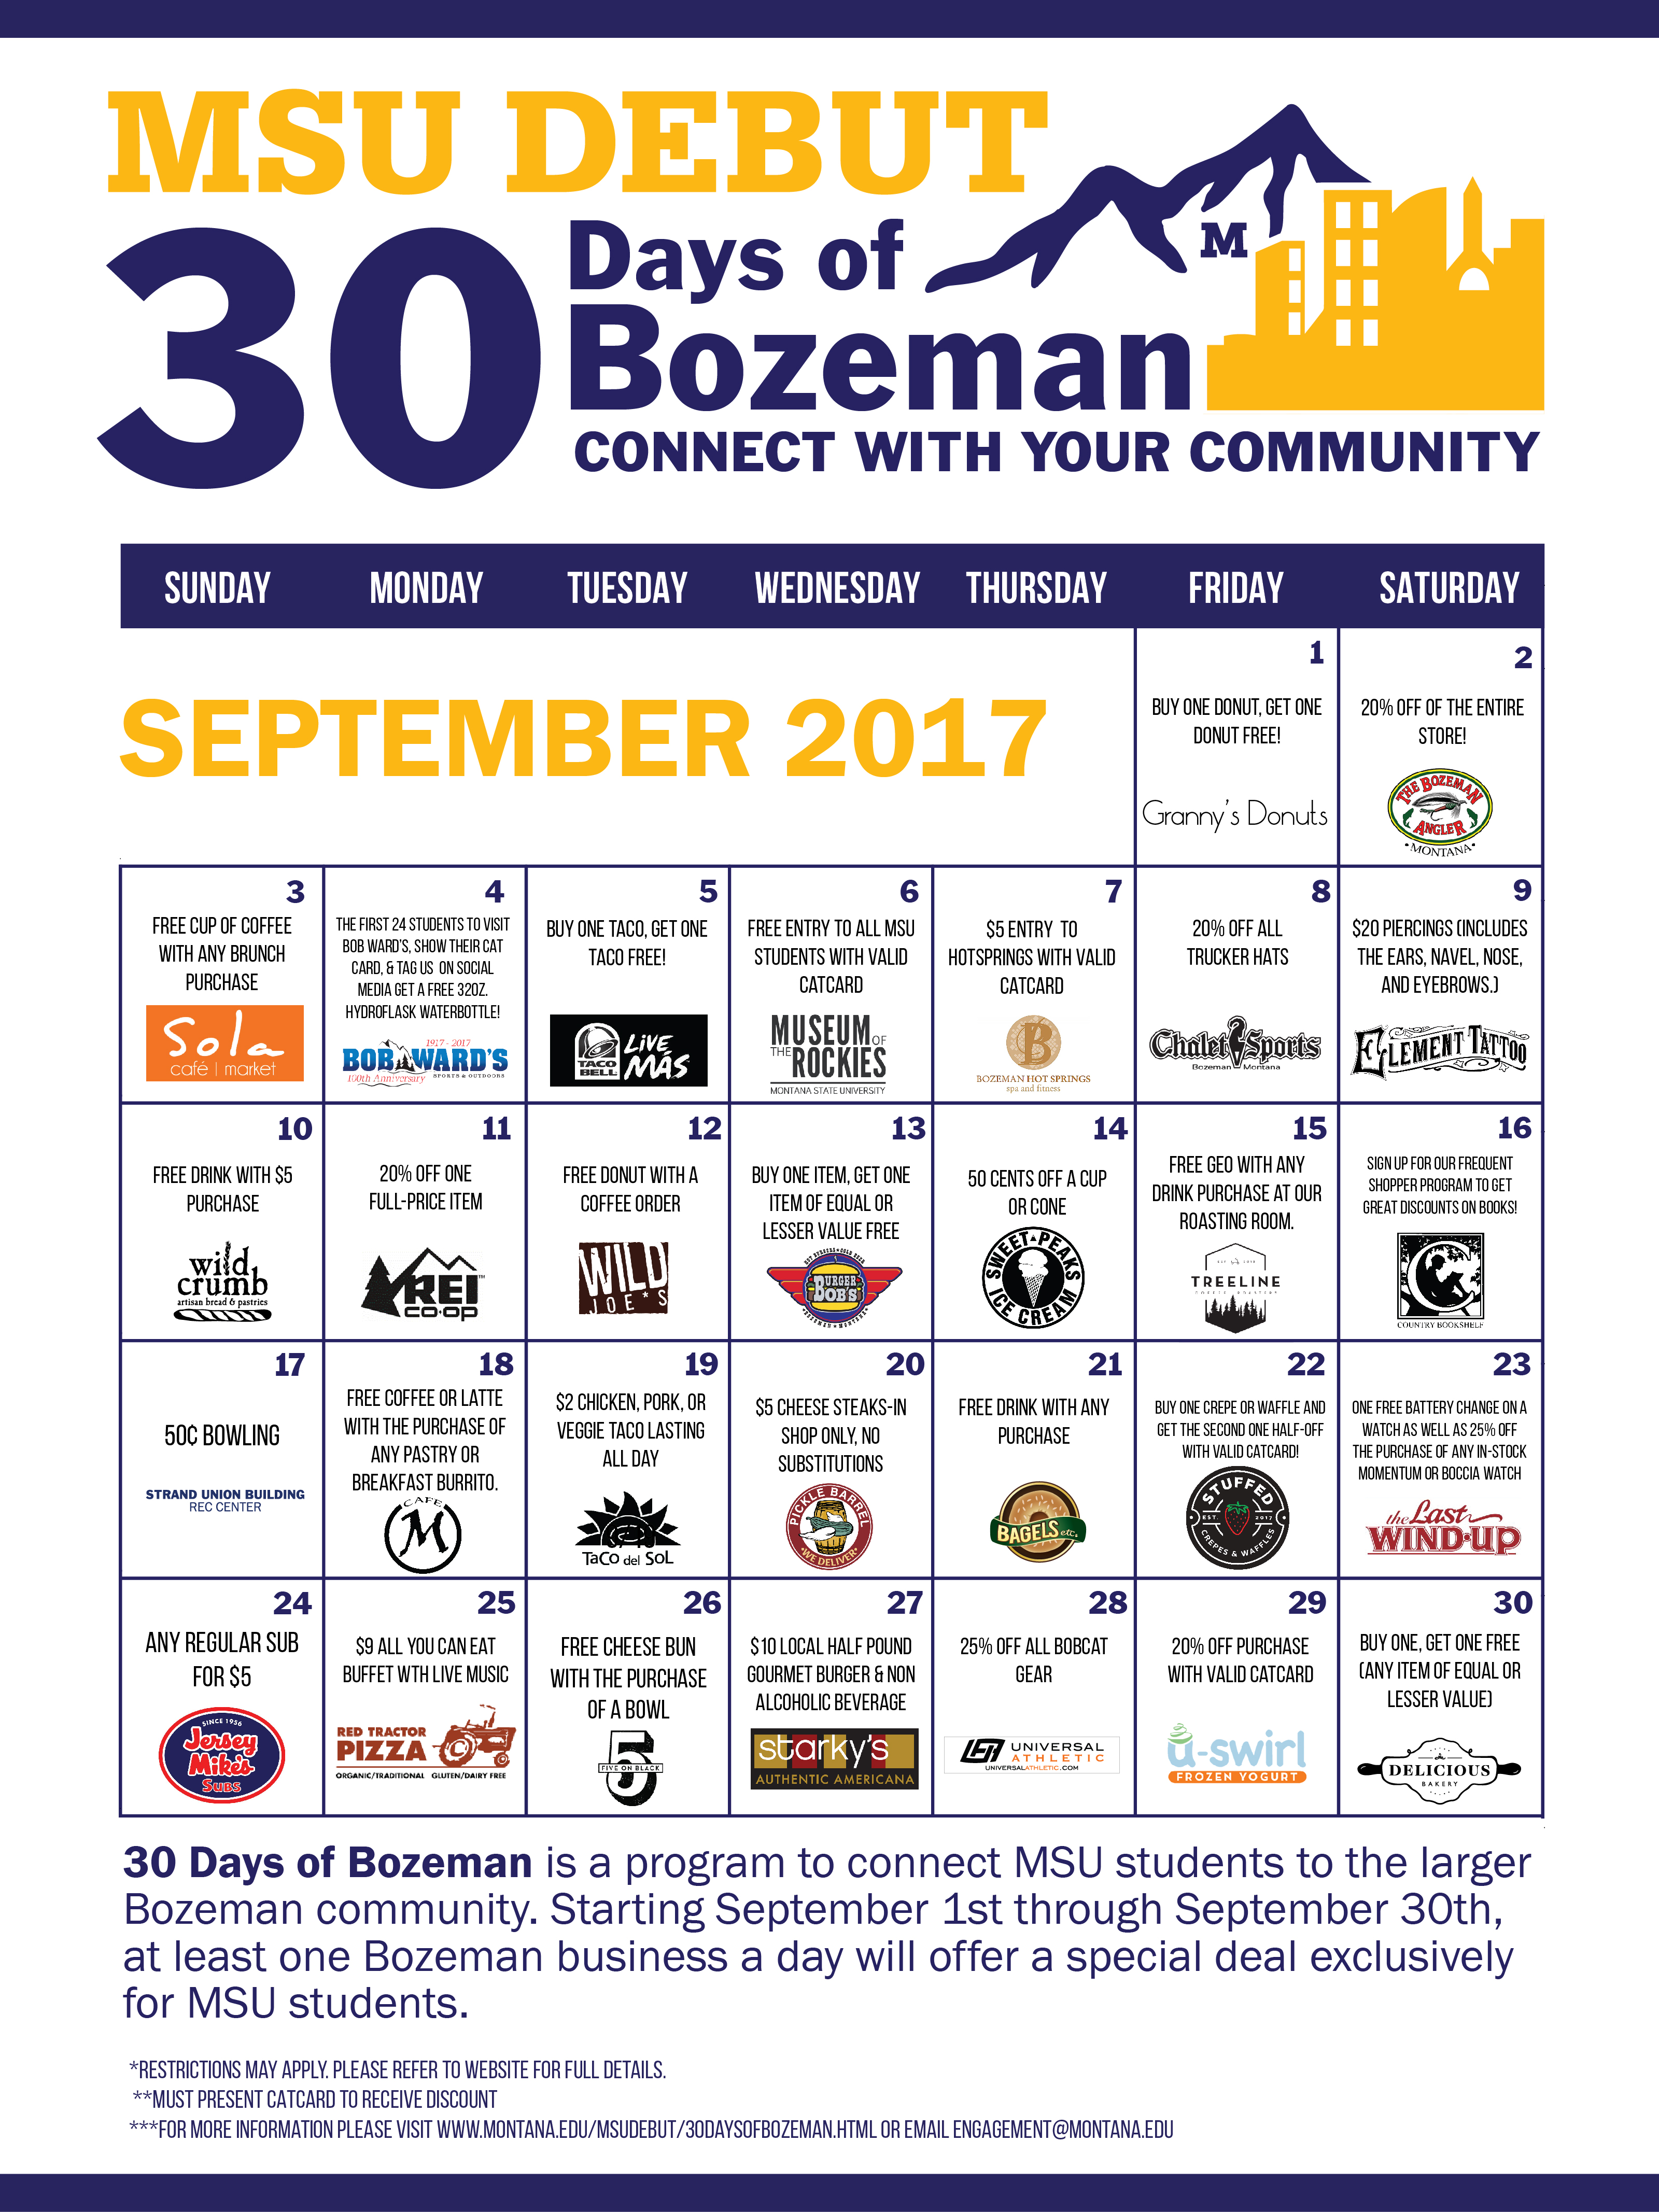 Different local deals, every day, all September long!